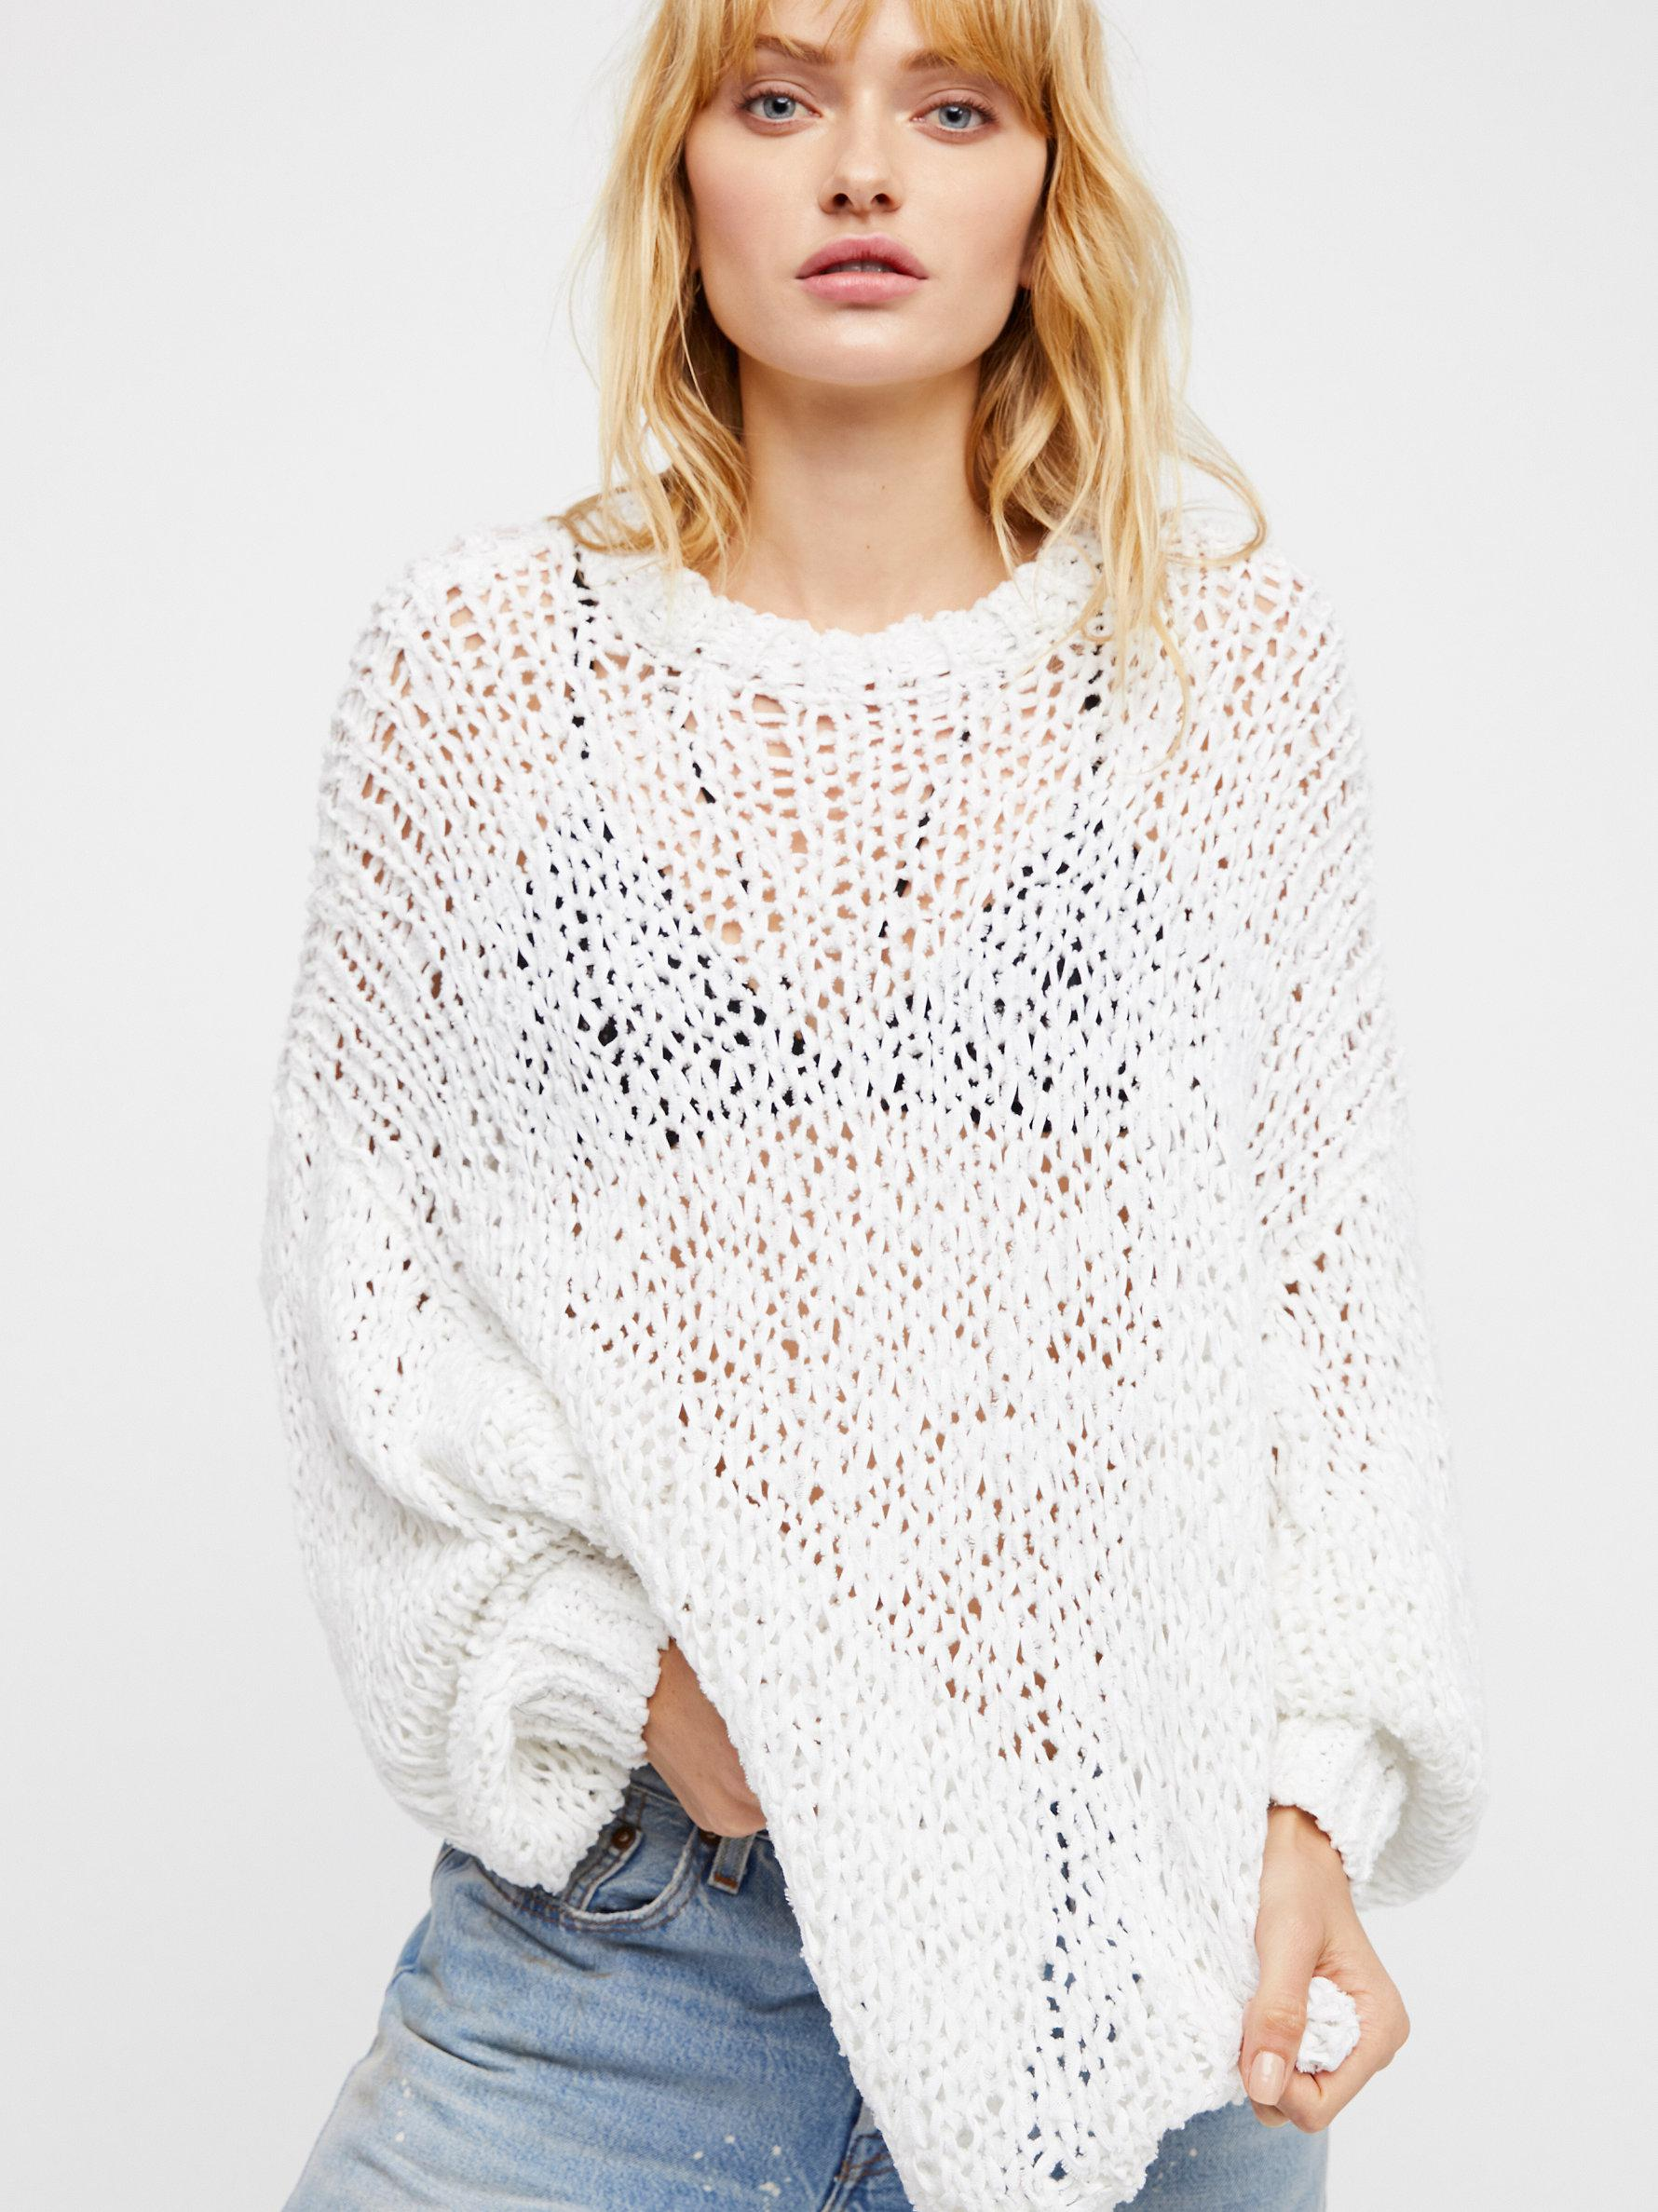 ed4437bc67d6 Lyst - Free People Beach Girl Sweater in White